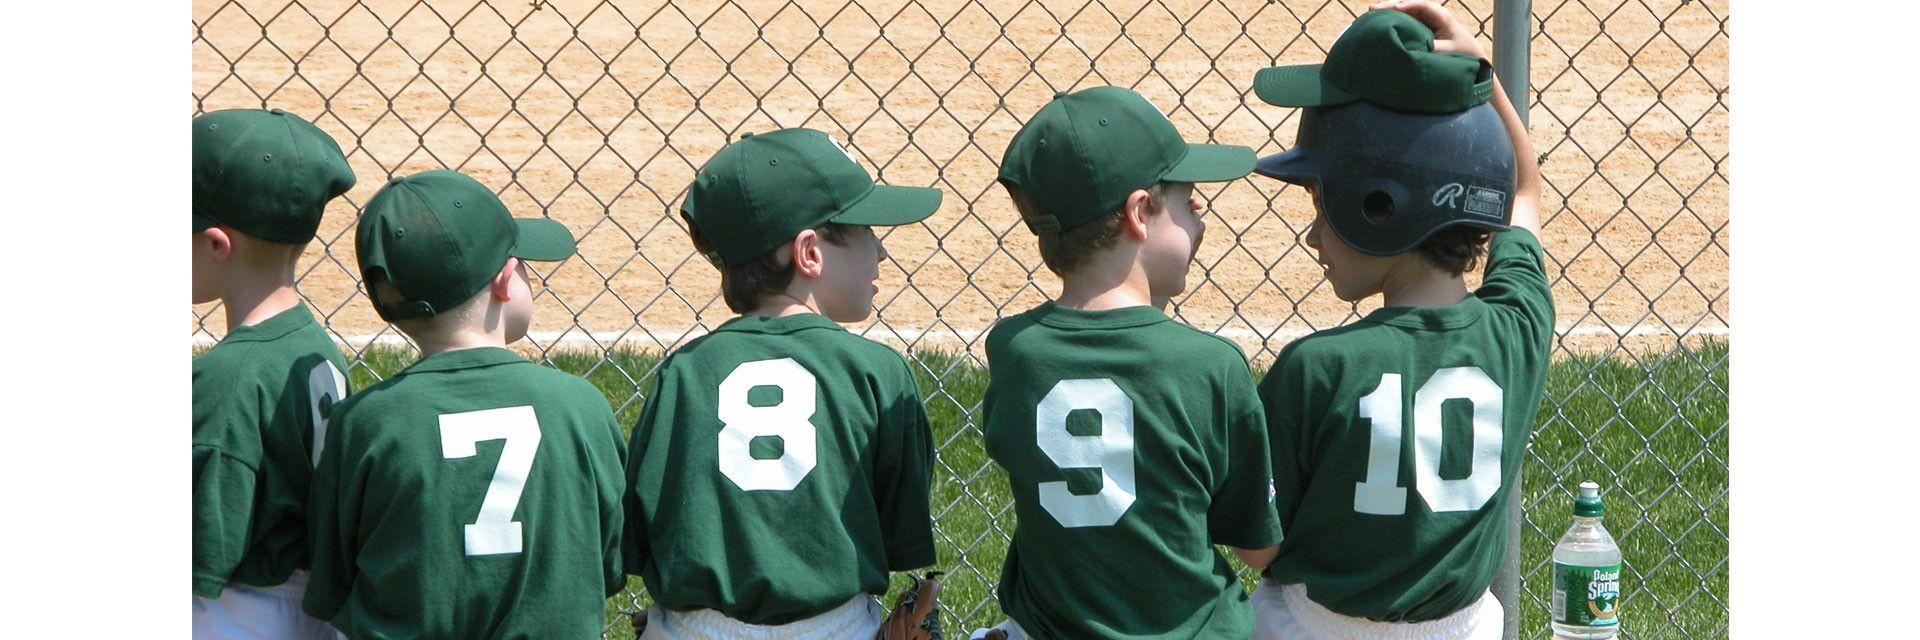 Overuse Injuries In Young Baseball Players